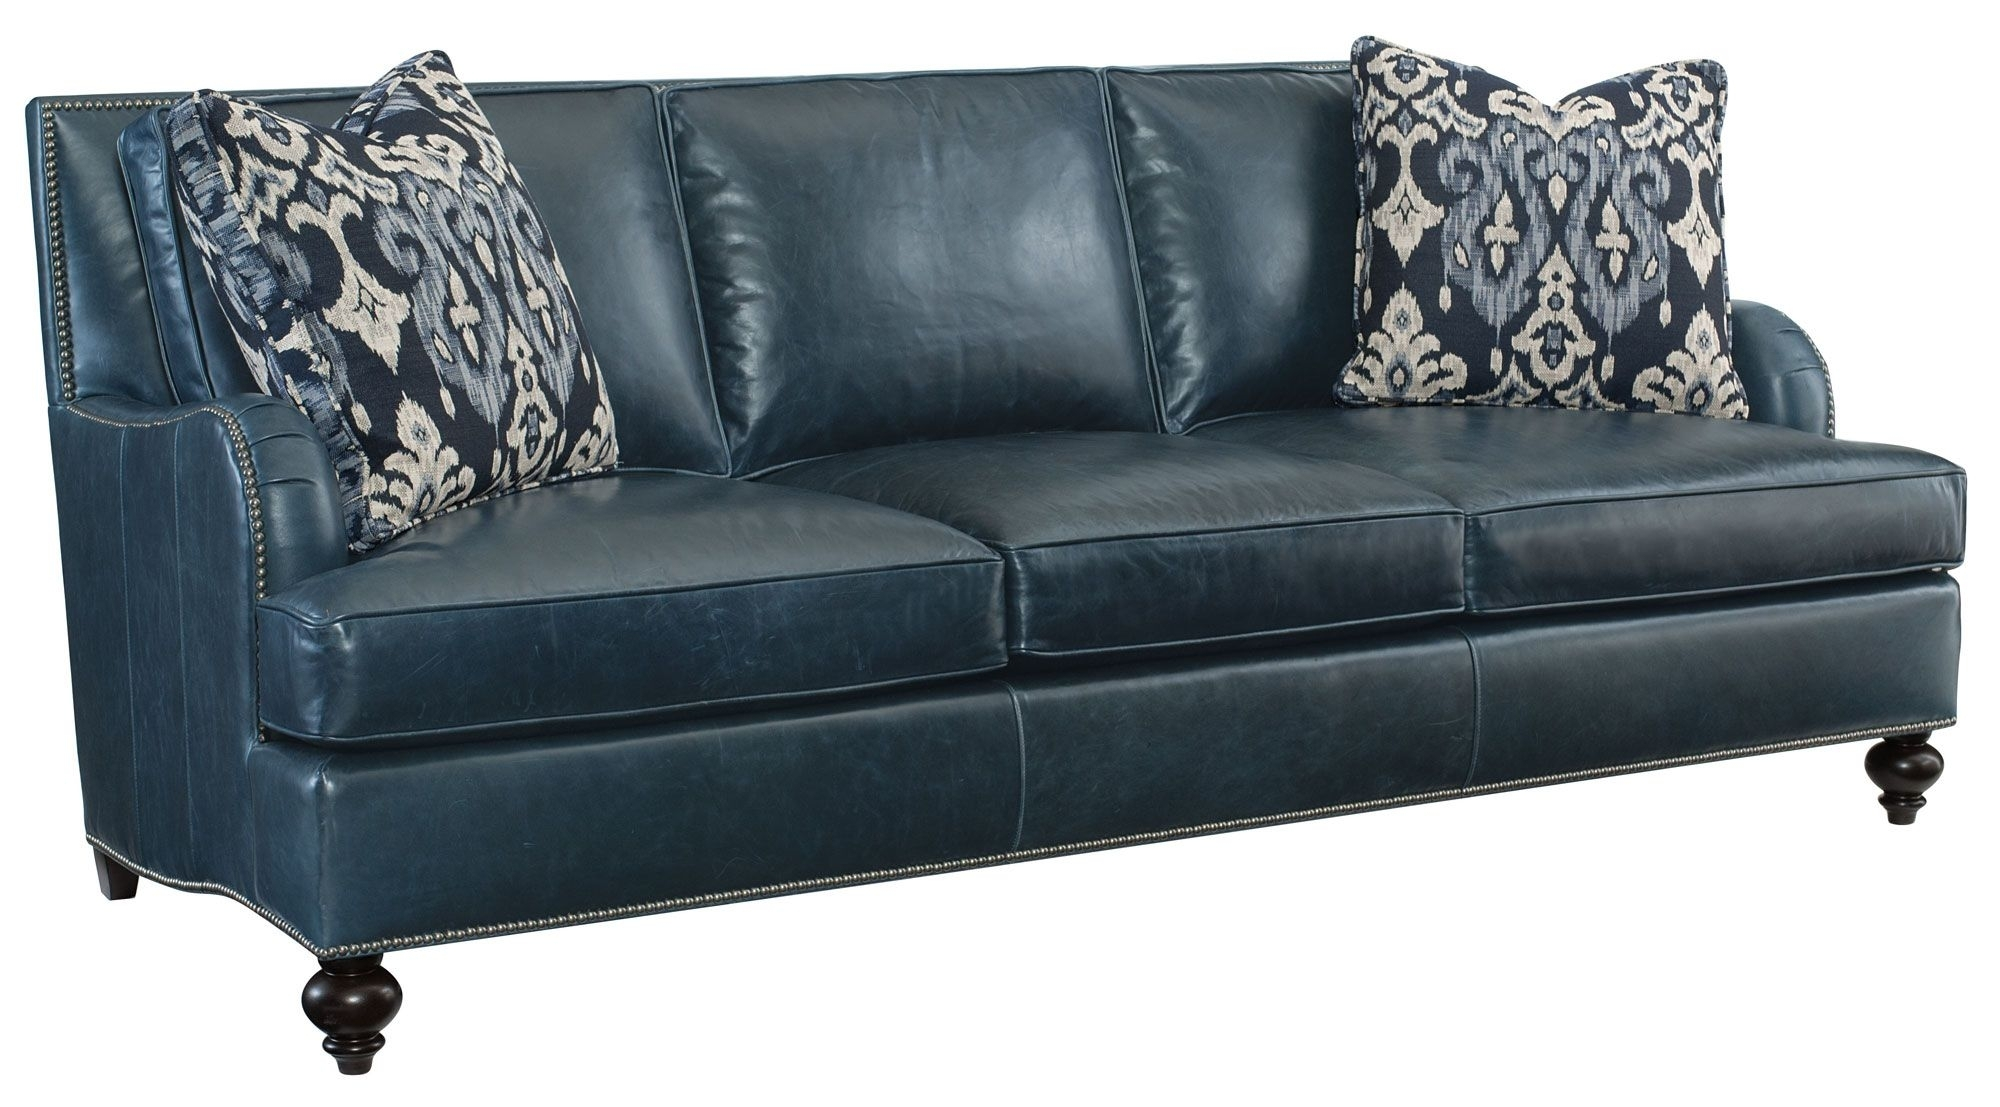 Halifax Inspirational Sofa Bed 25 Beautiful Sectional Sofas Dillards